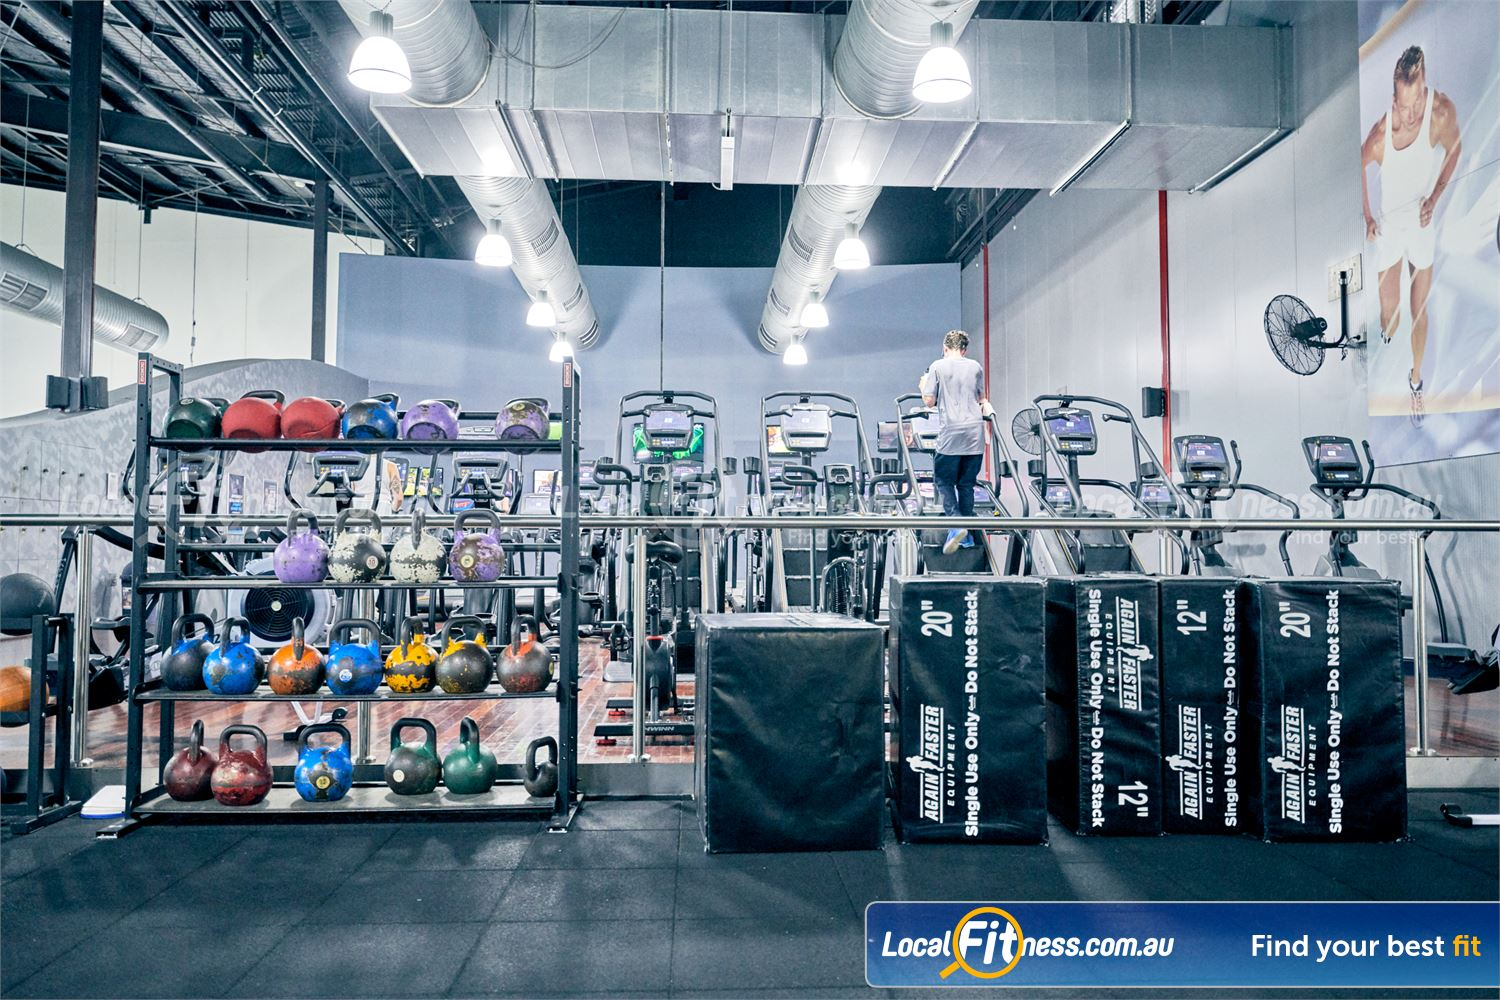 Goodlife Health Clubs Karingal Our functional training area is fully equipped with foam plyo boxes, kettlebells and more.